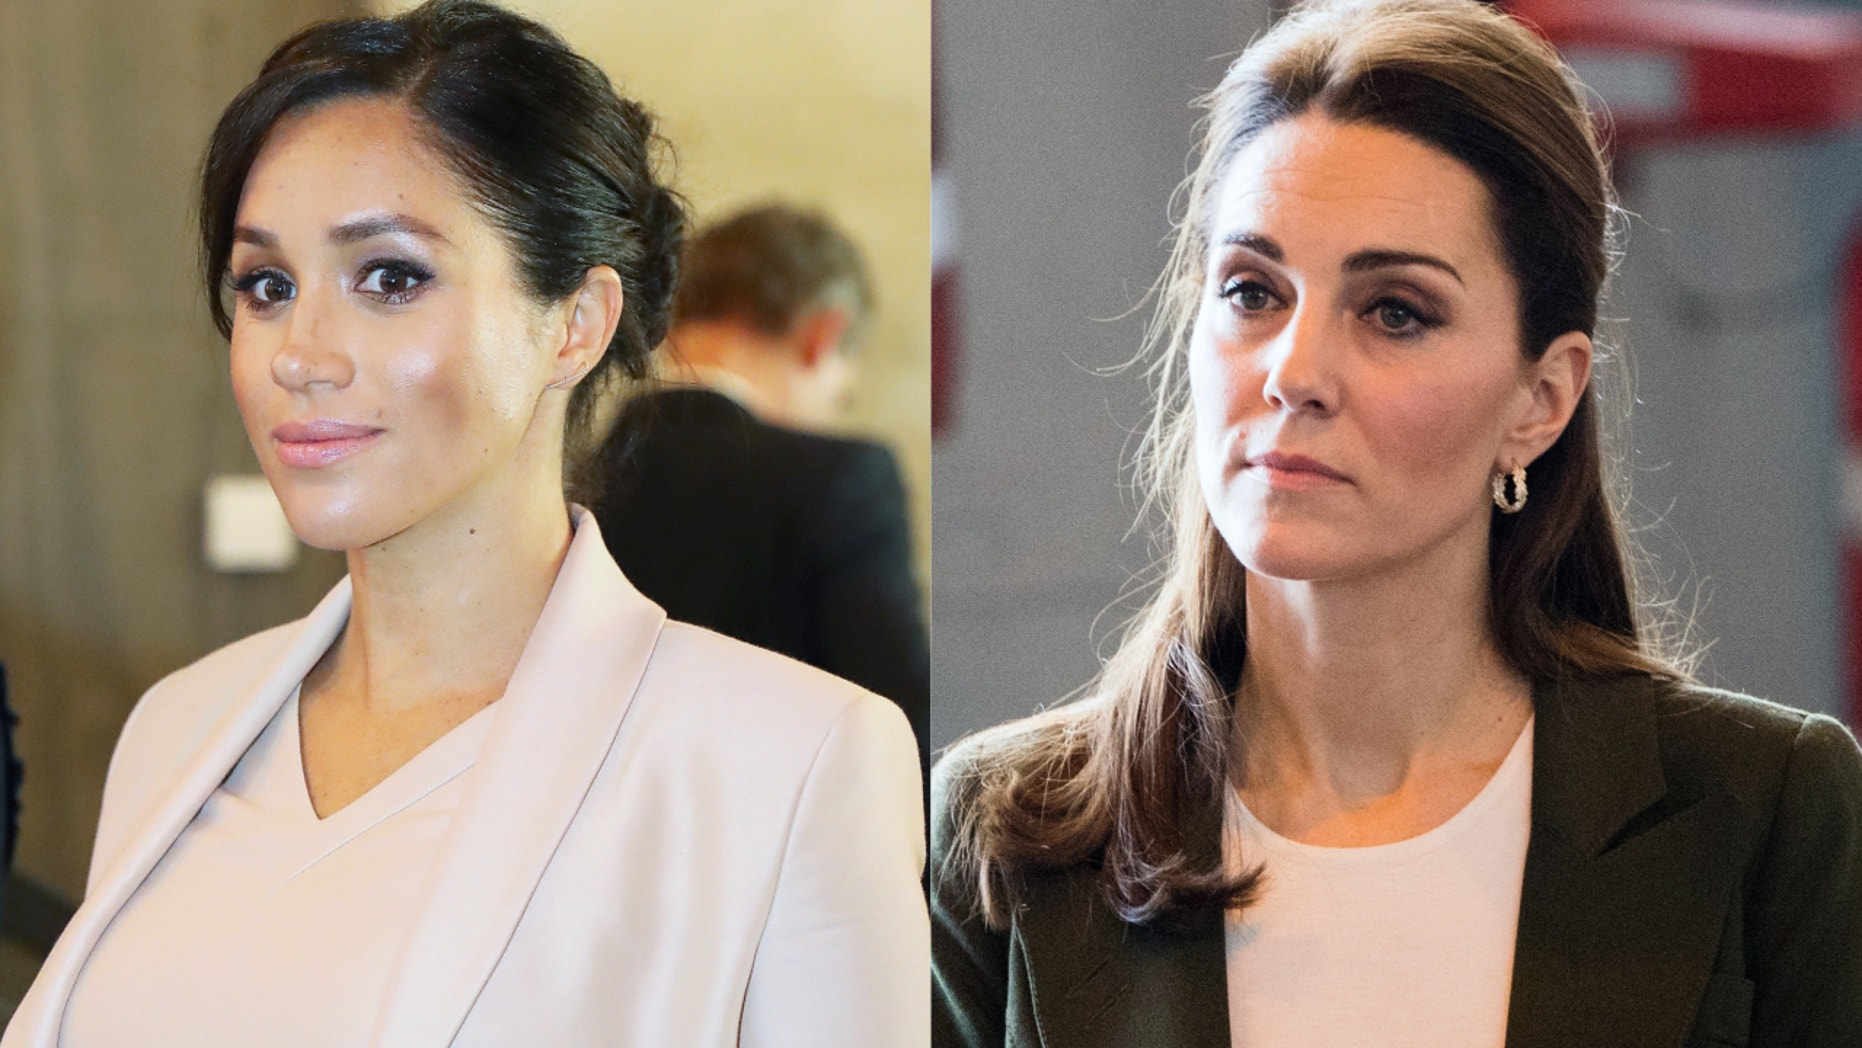 Royal experts come to Meghan's defence amid 'high profile' baby shower criticism